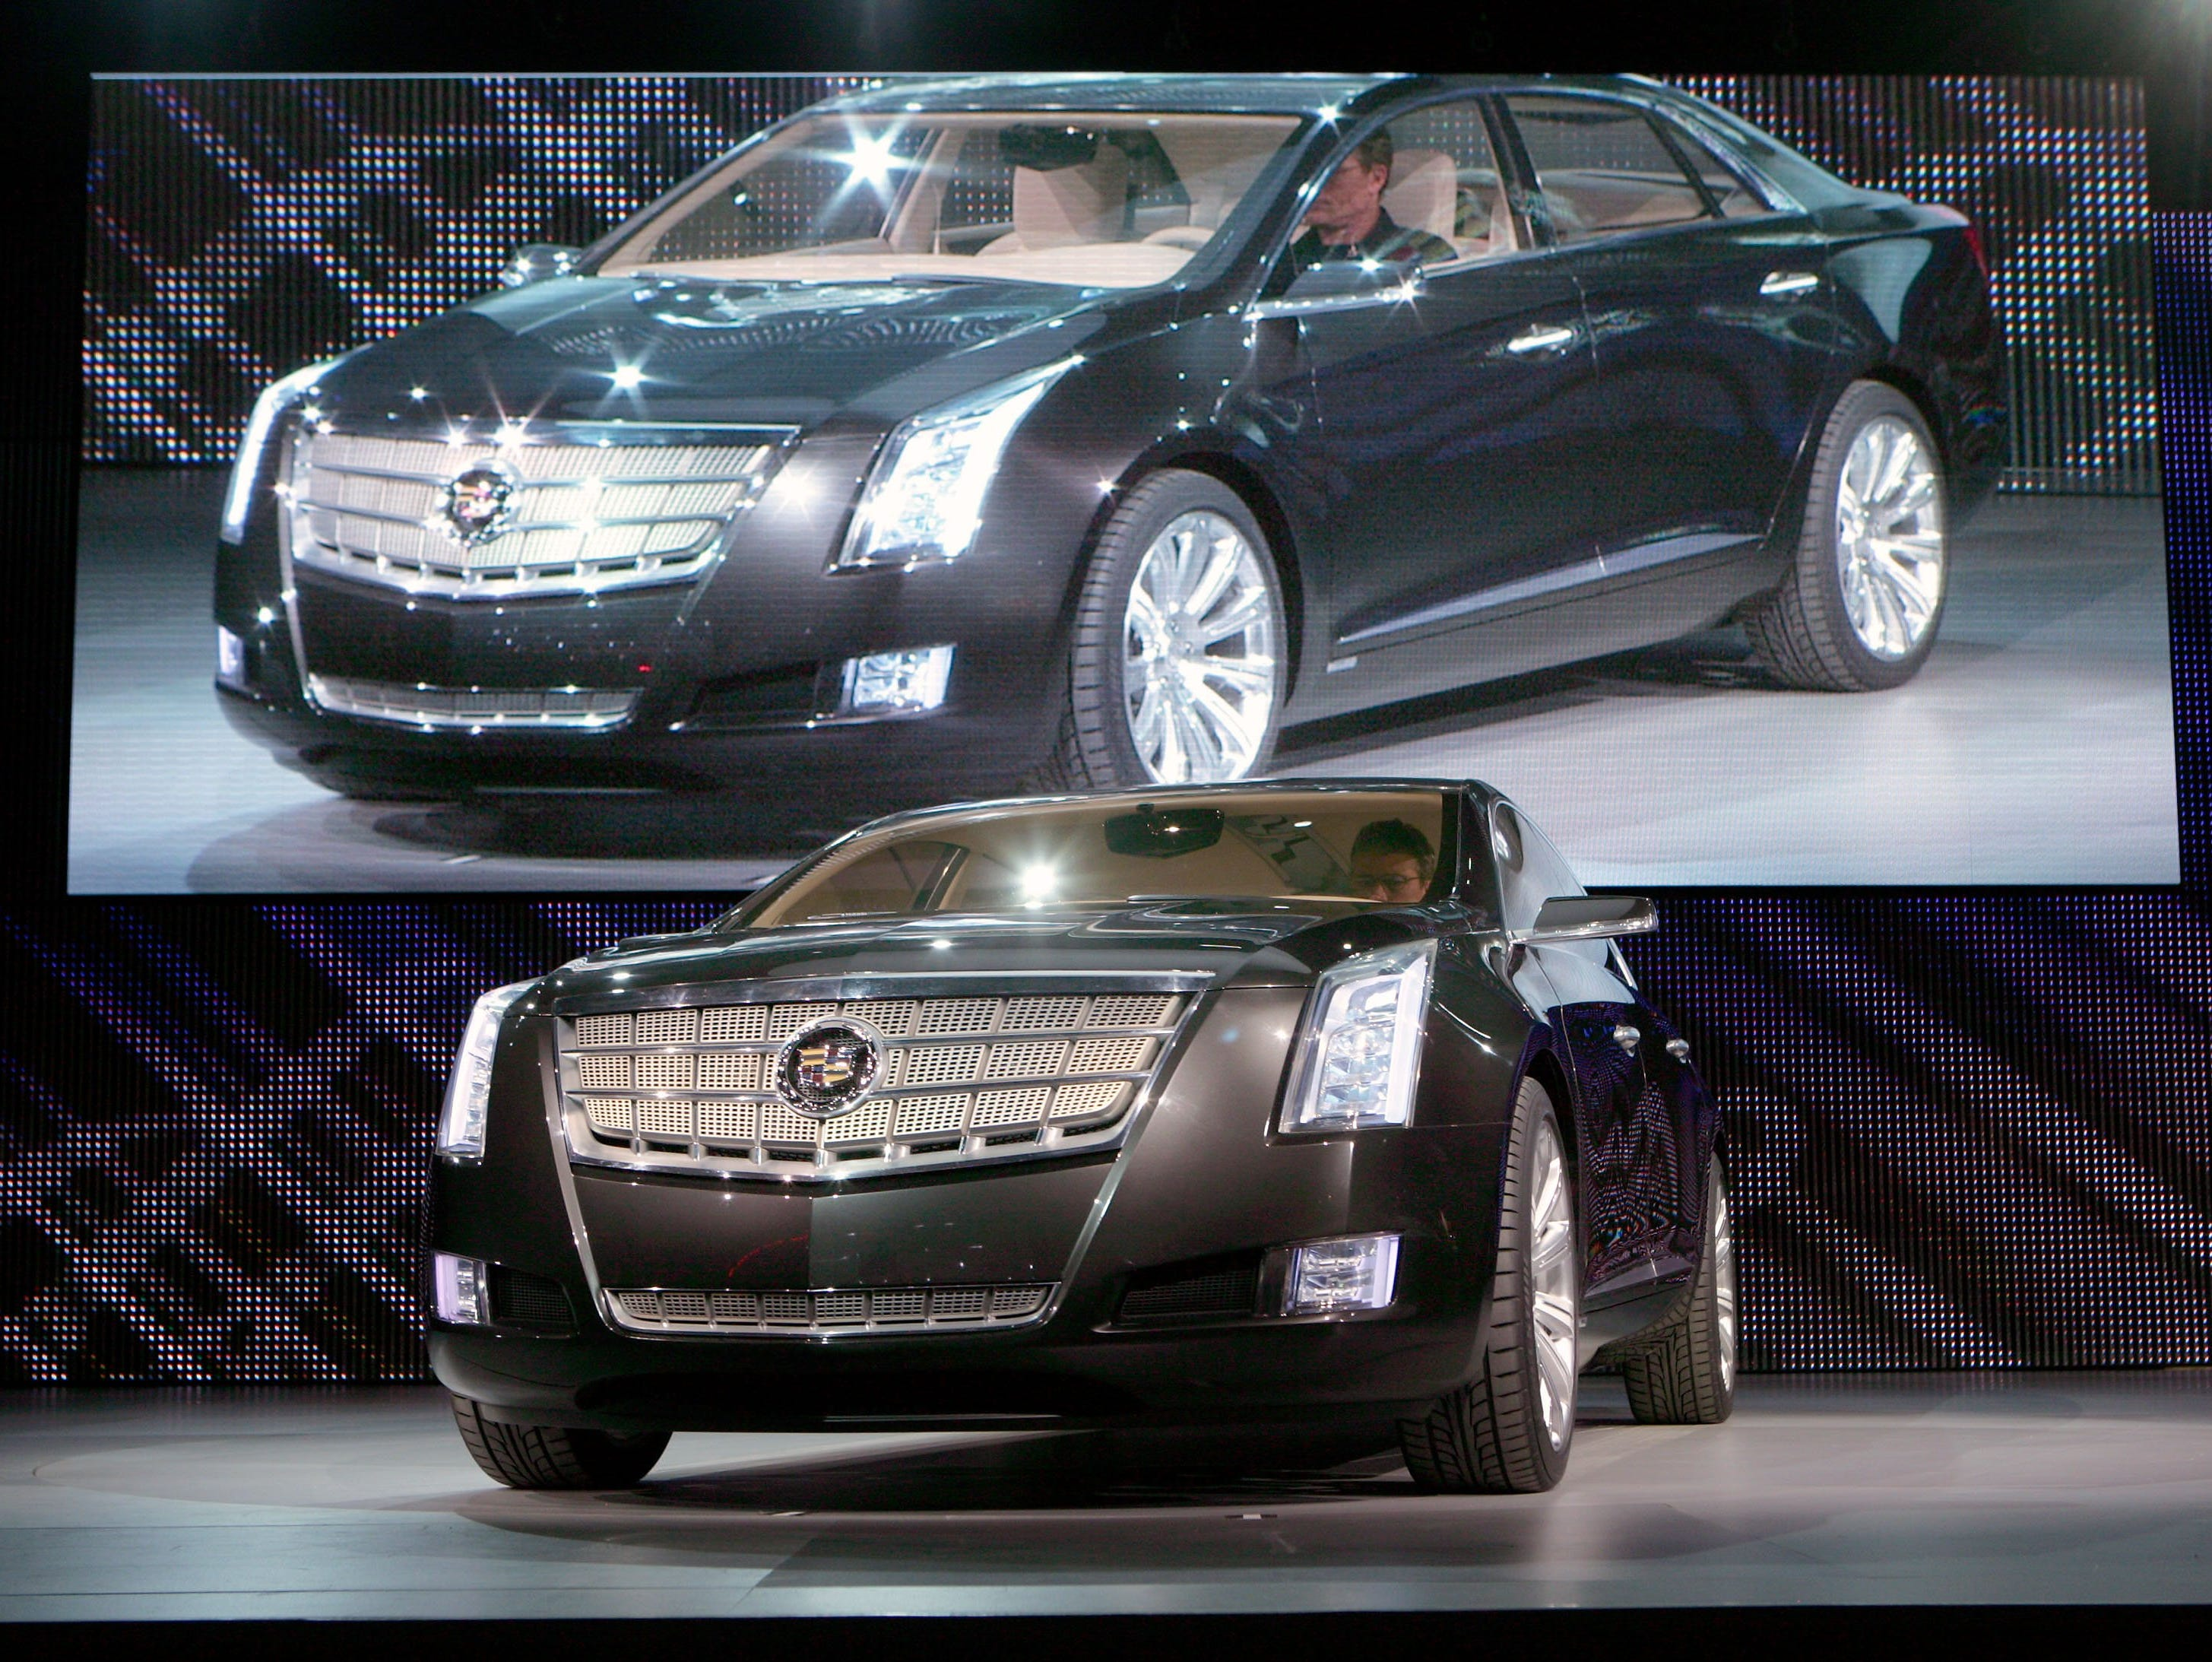 The Cadillac XTS Platinum concept is unveiled Tuesday, January 12, 2010 at the North American International Auto Show in Detroit, Michigan.